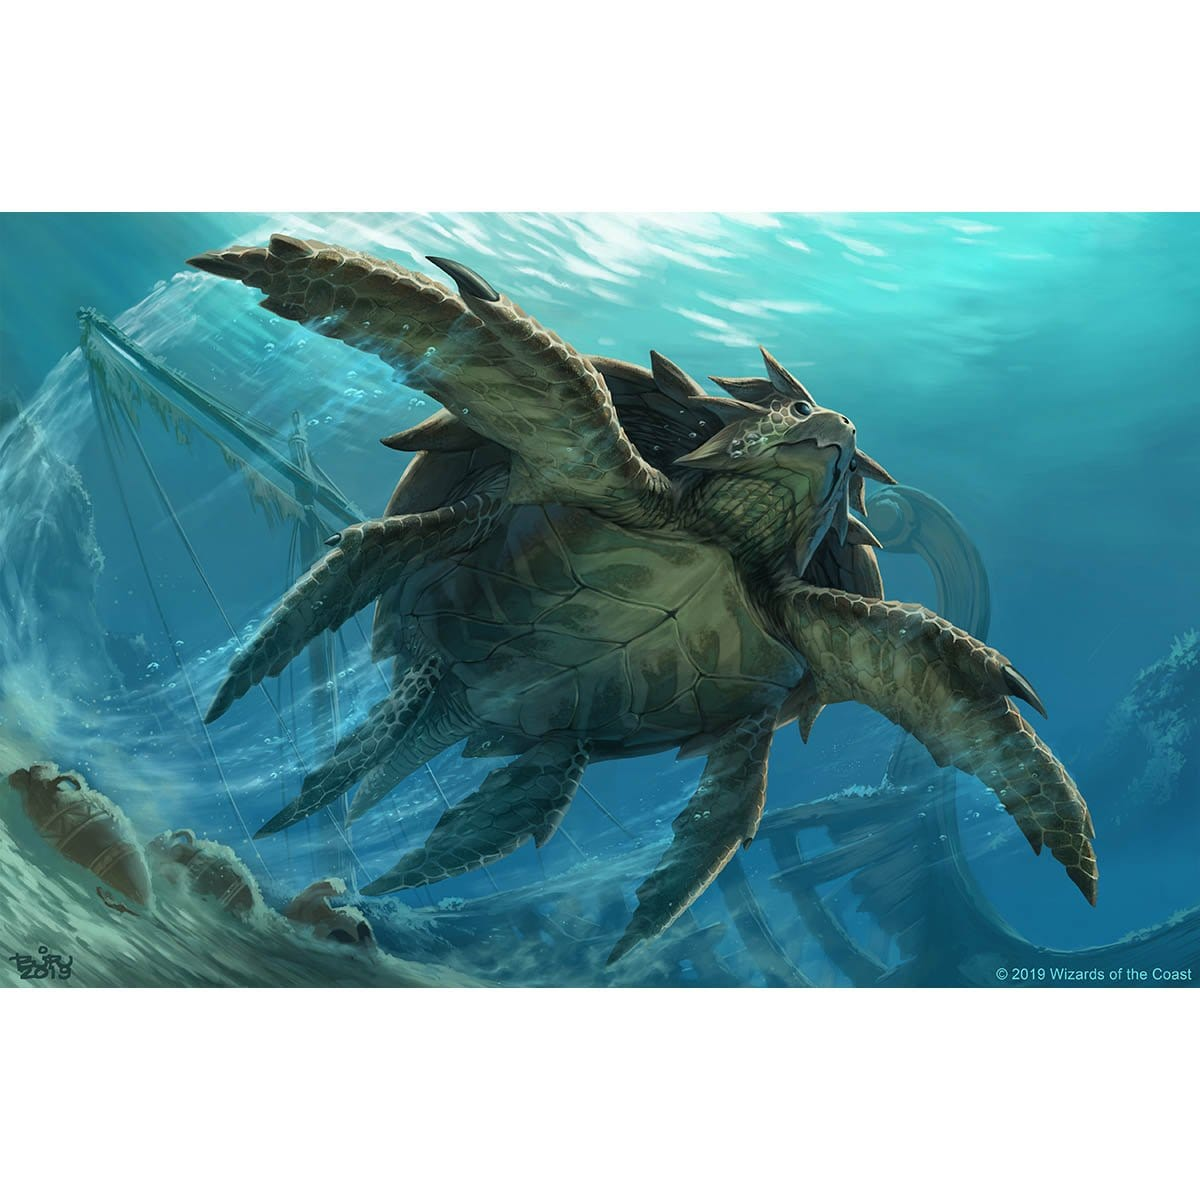 Riptide Turtle Print - Print - Original Magic Art - Accessories for Magic the Gathering and other card games